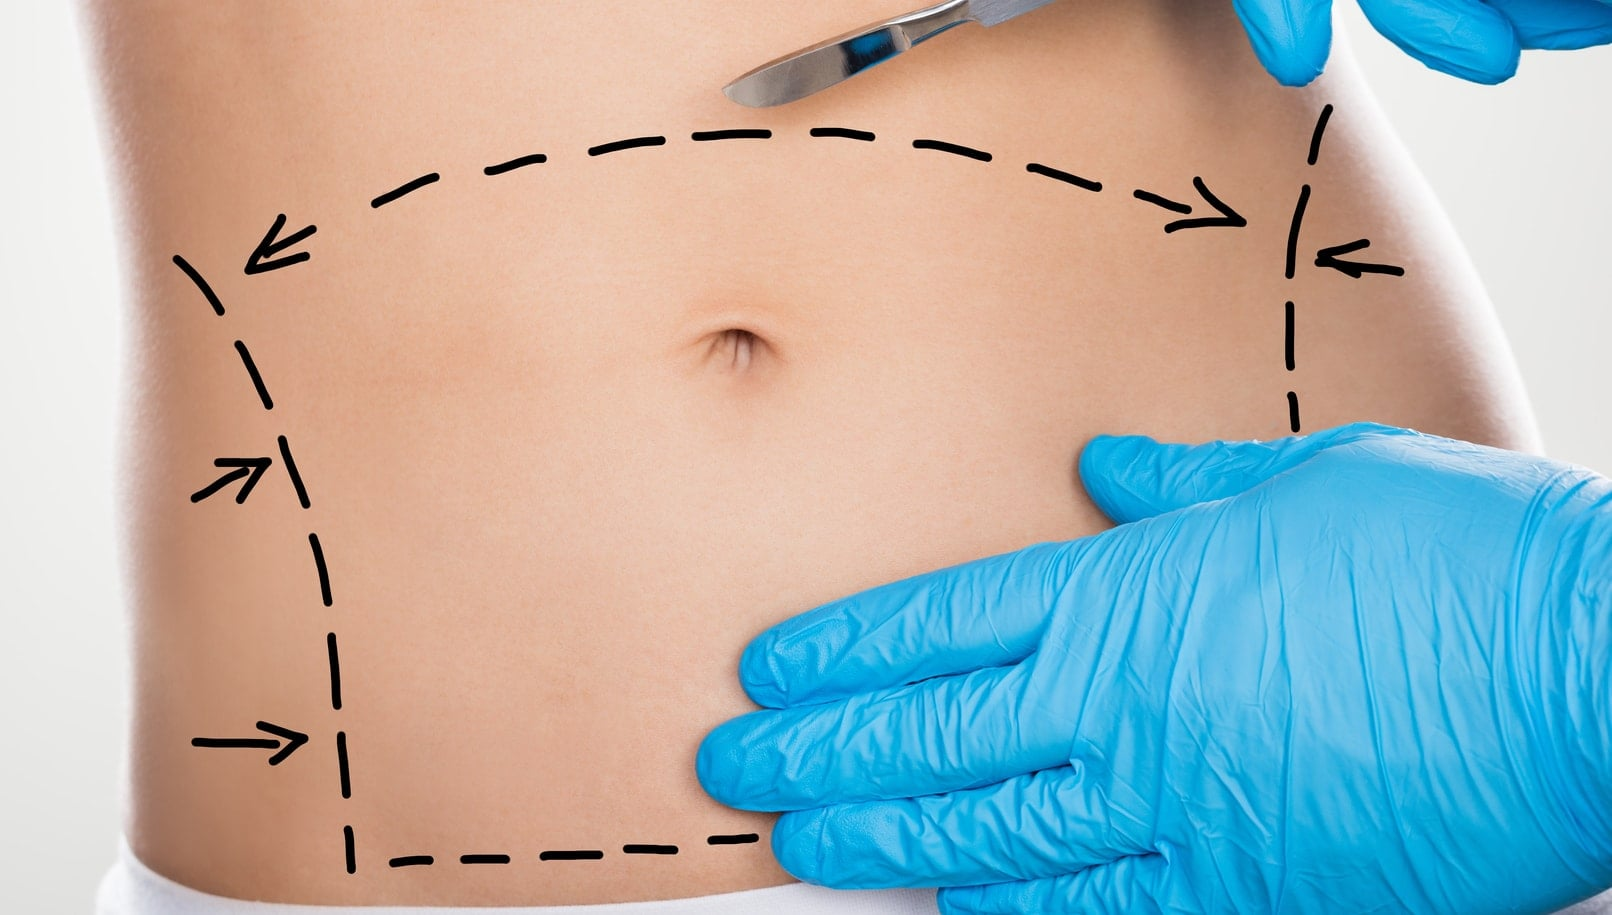 What is abdominoplasty